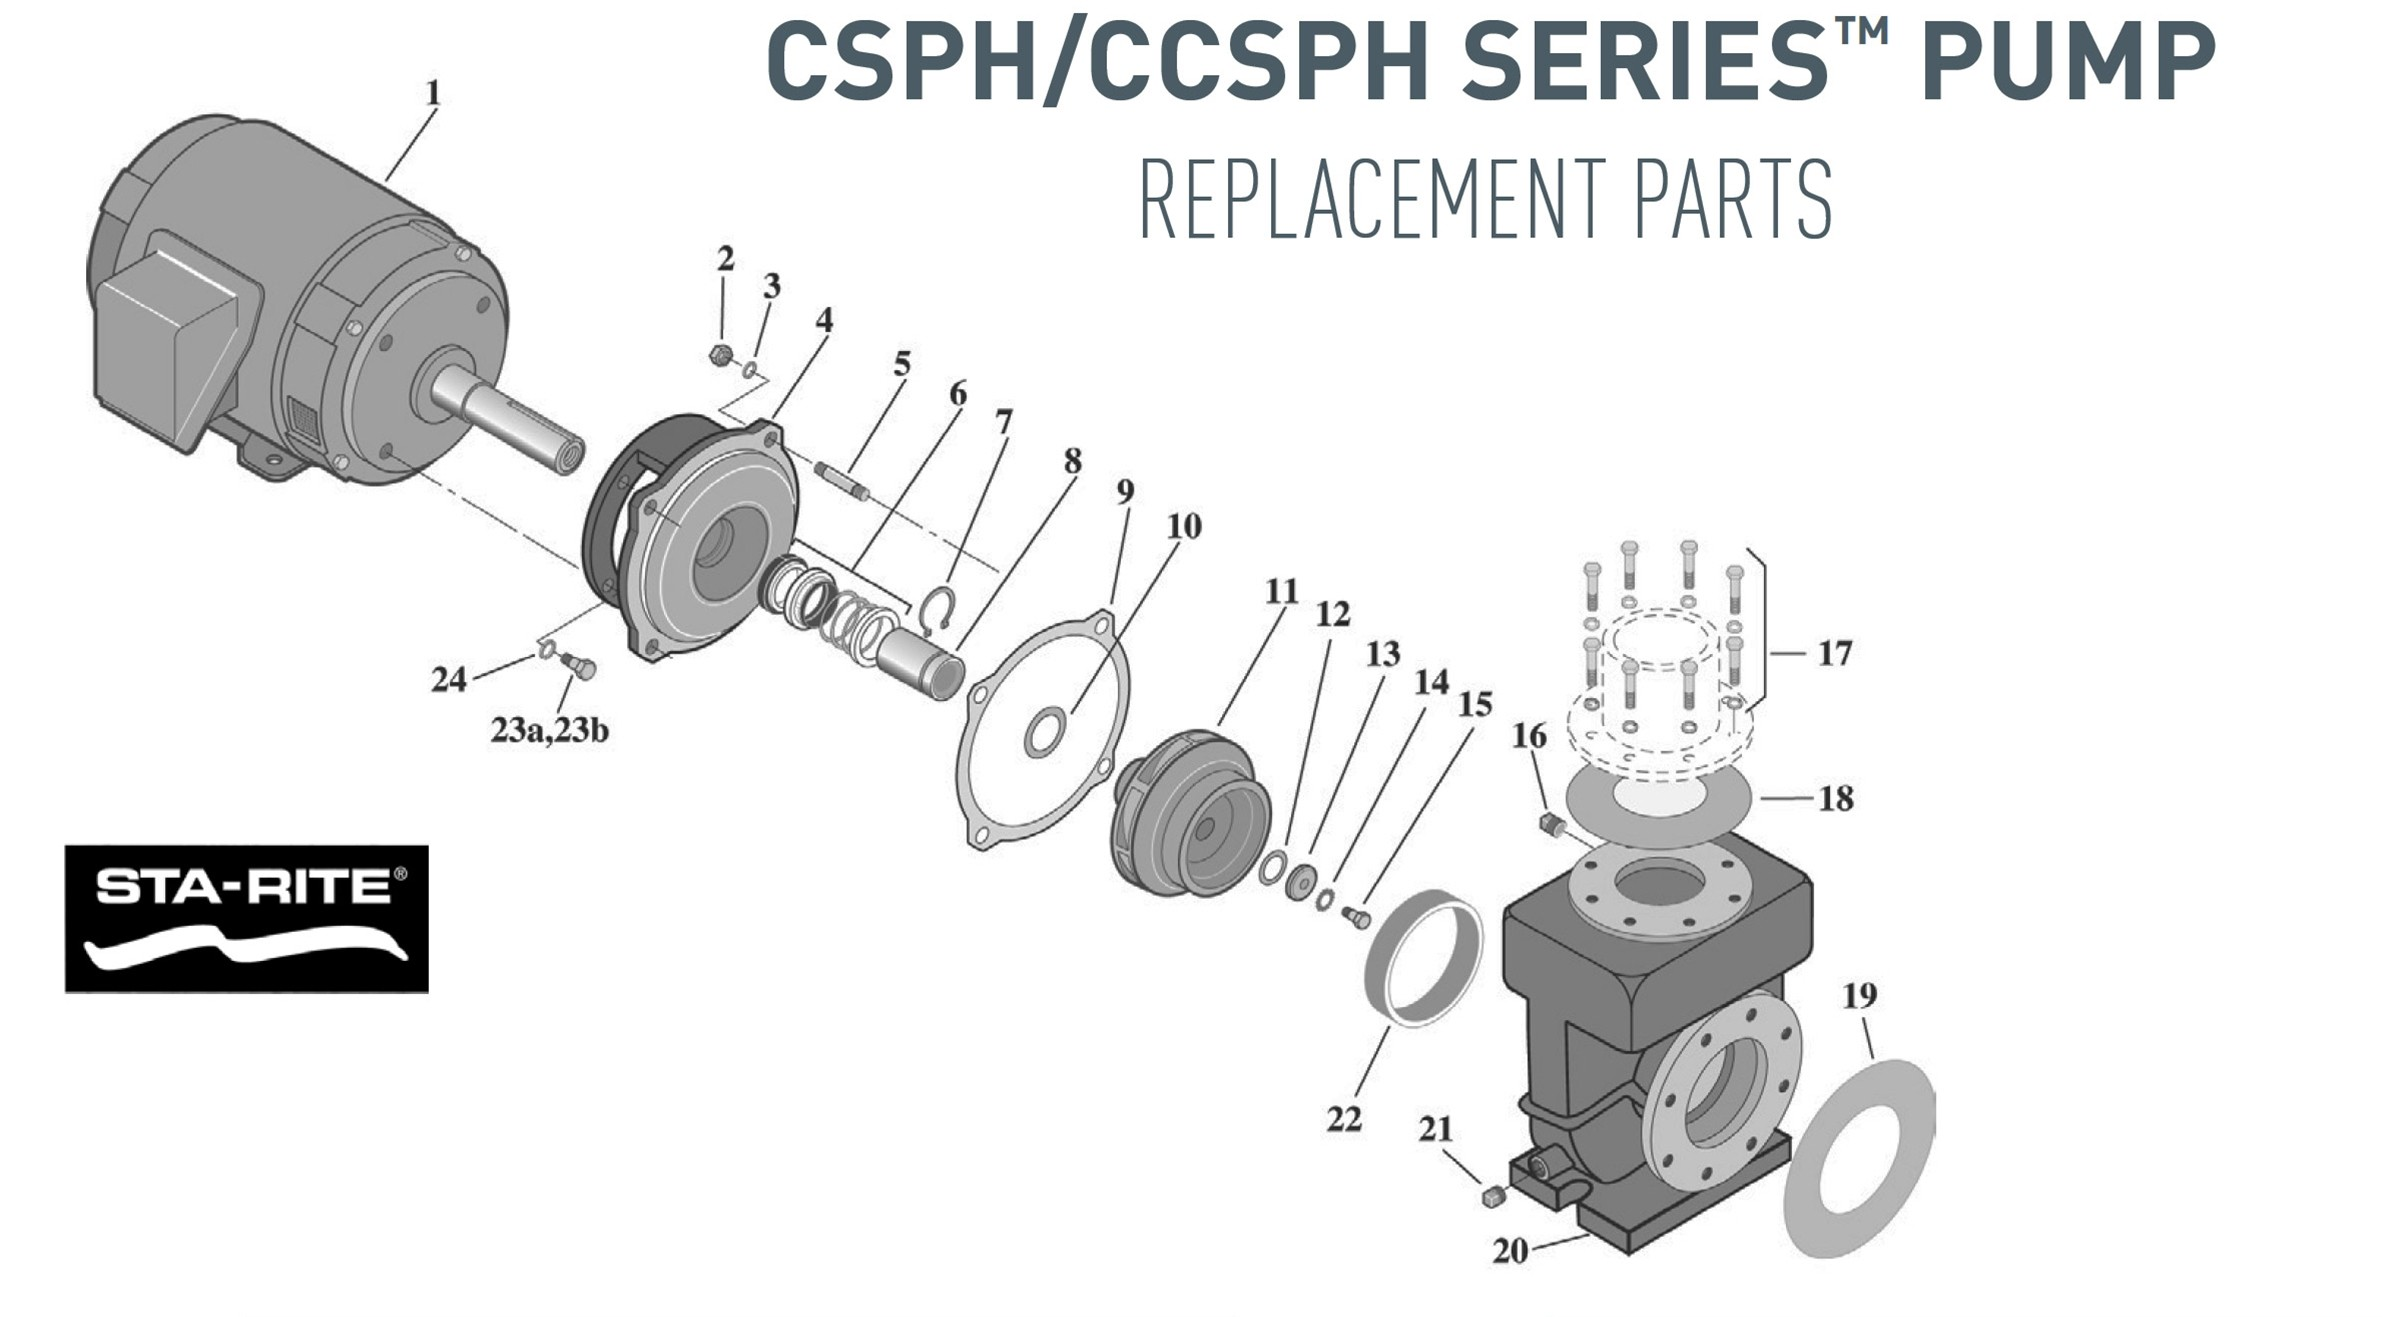 Hayward Pool Pump Parts Diagram Sta Rite Csph Ccsph Series™ Pool Pump Parts Of Hayward Pool Pump Parts Diagram